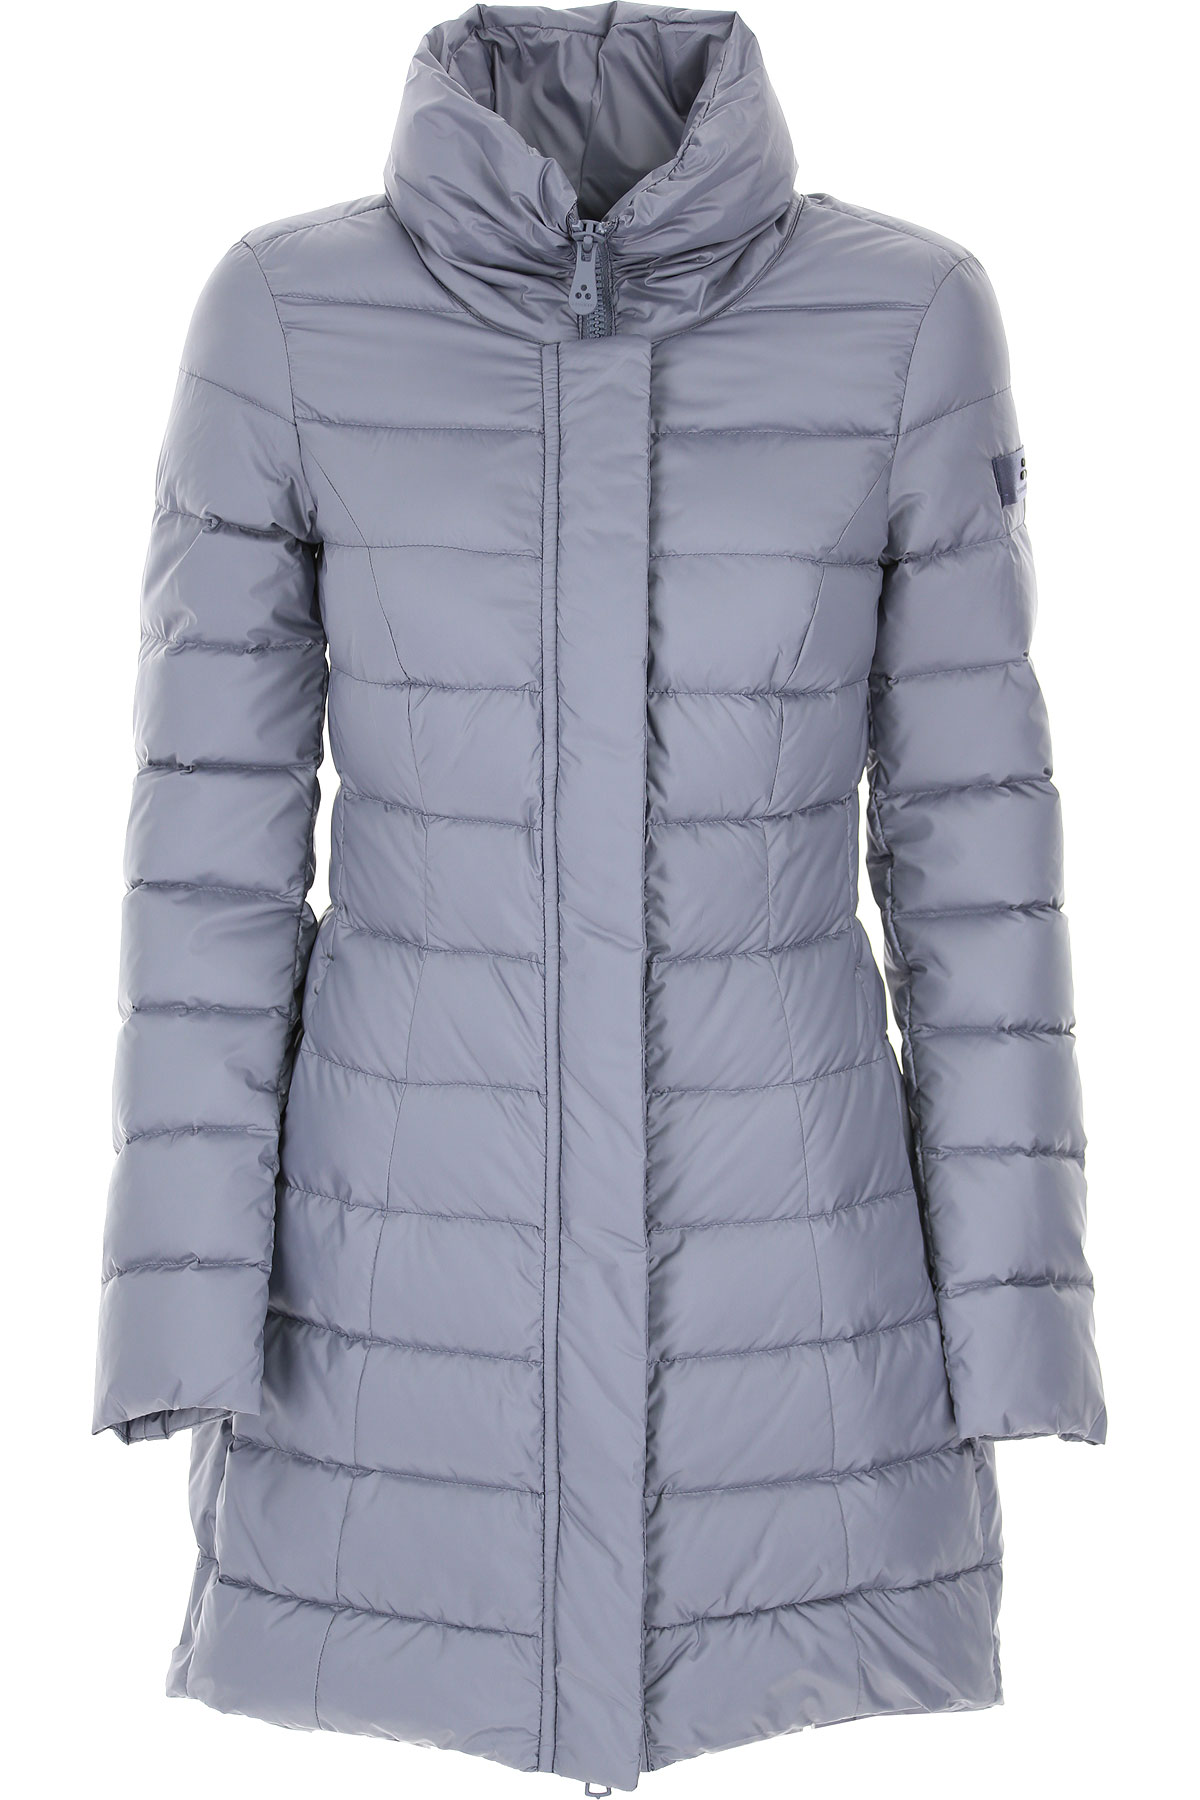 Peuterey Down Jacket for Women, Puffer Ski Jacket On Sale in Outlet, dust Blue, polyester, 2019, 10 4